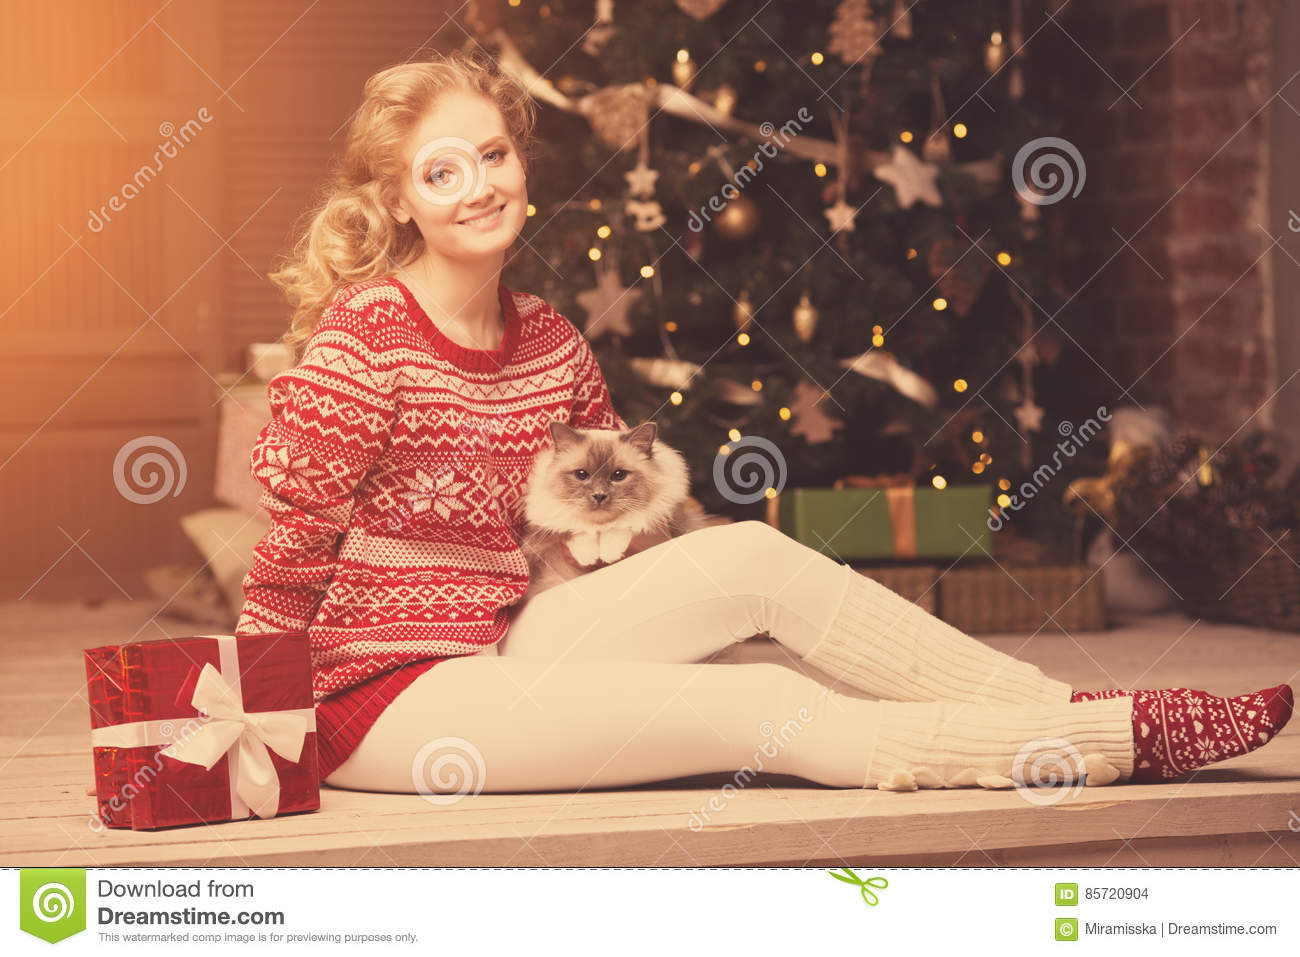 Christmas party, winter holidays woman with cat. New year girl.